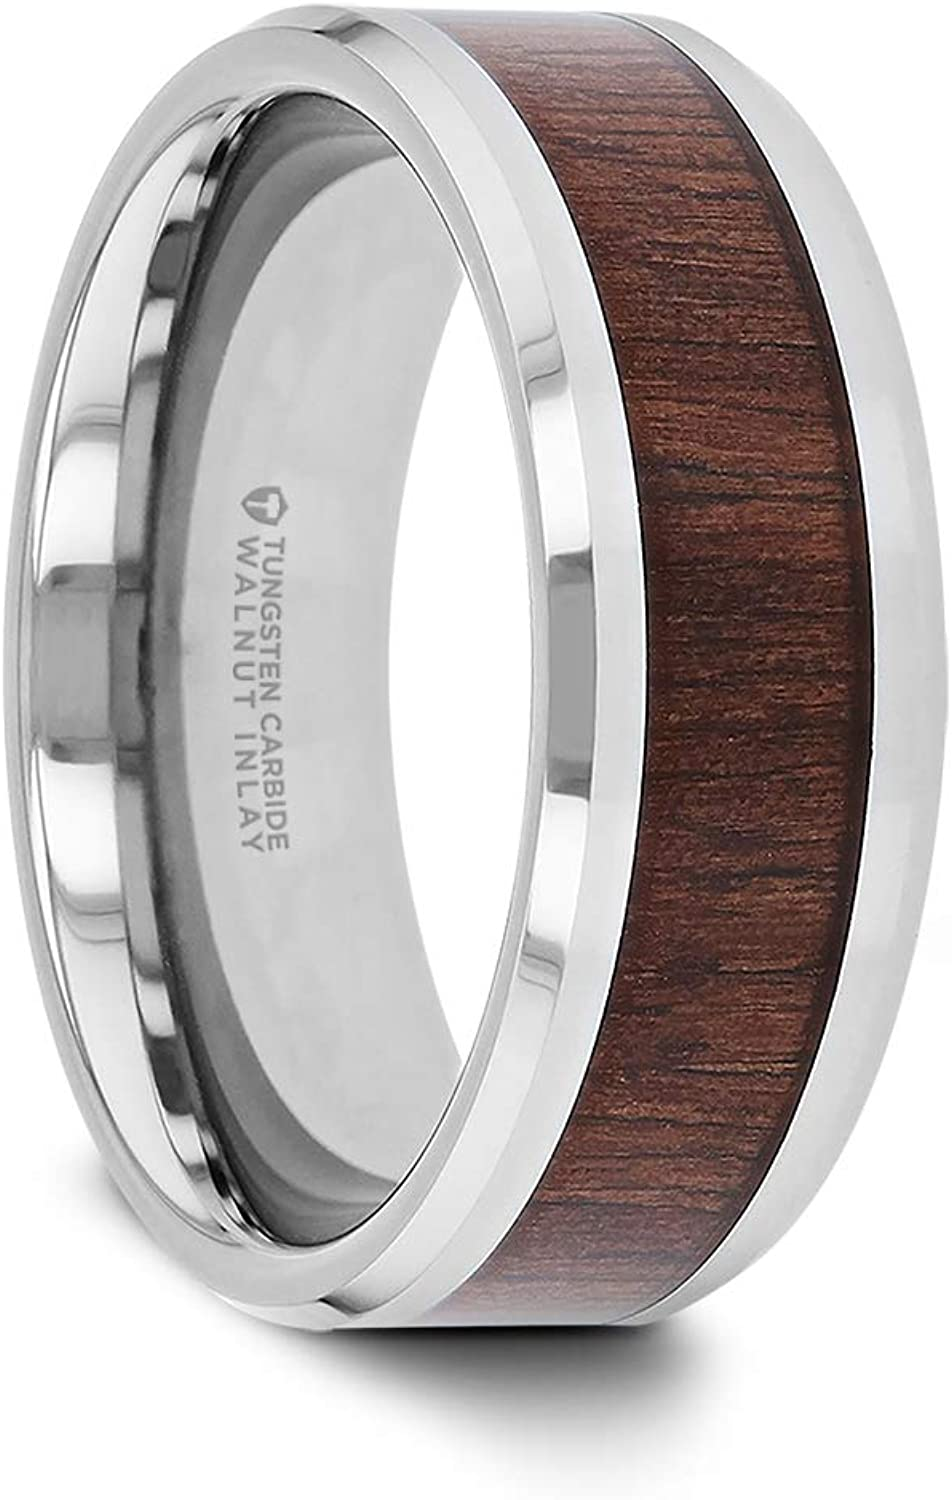 Thorsten Halifax | Tungsten Rings for Men | Tungsten | Comfort Fit | Wedding Ring Band with Smooth Bevels and Black Walnut Wood Inlay - 8mm